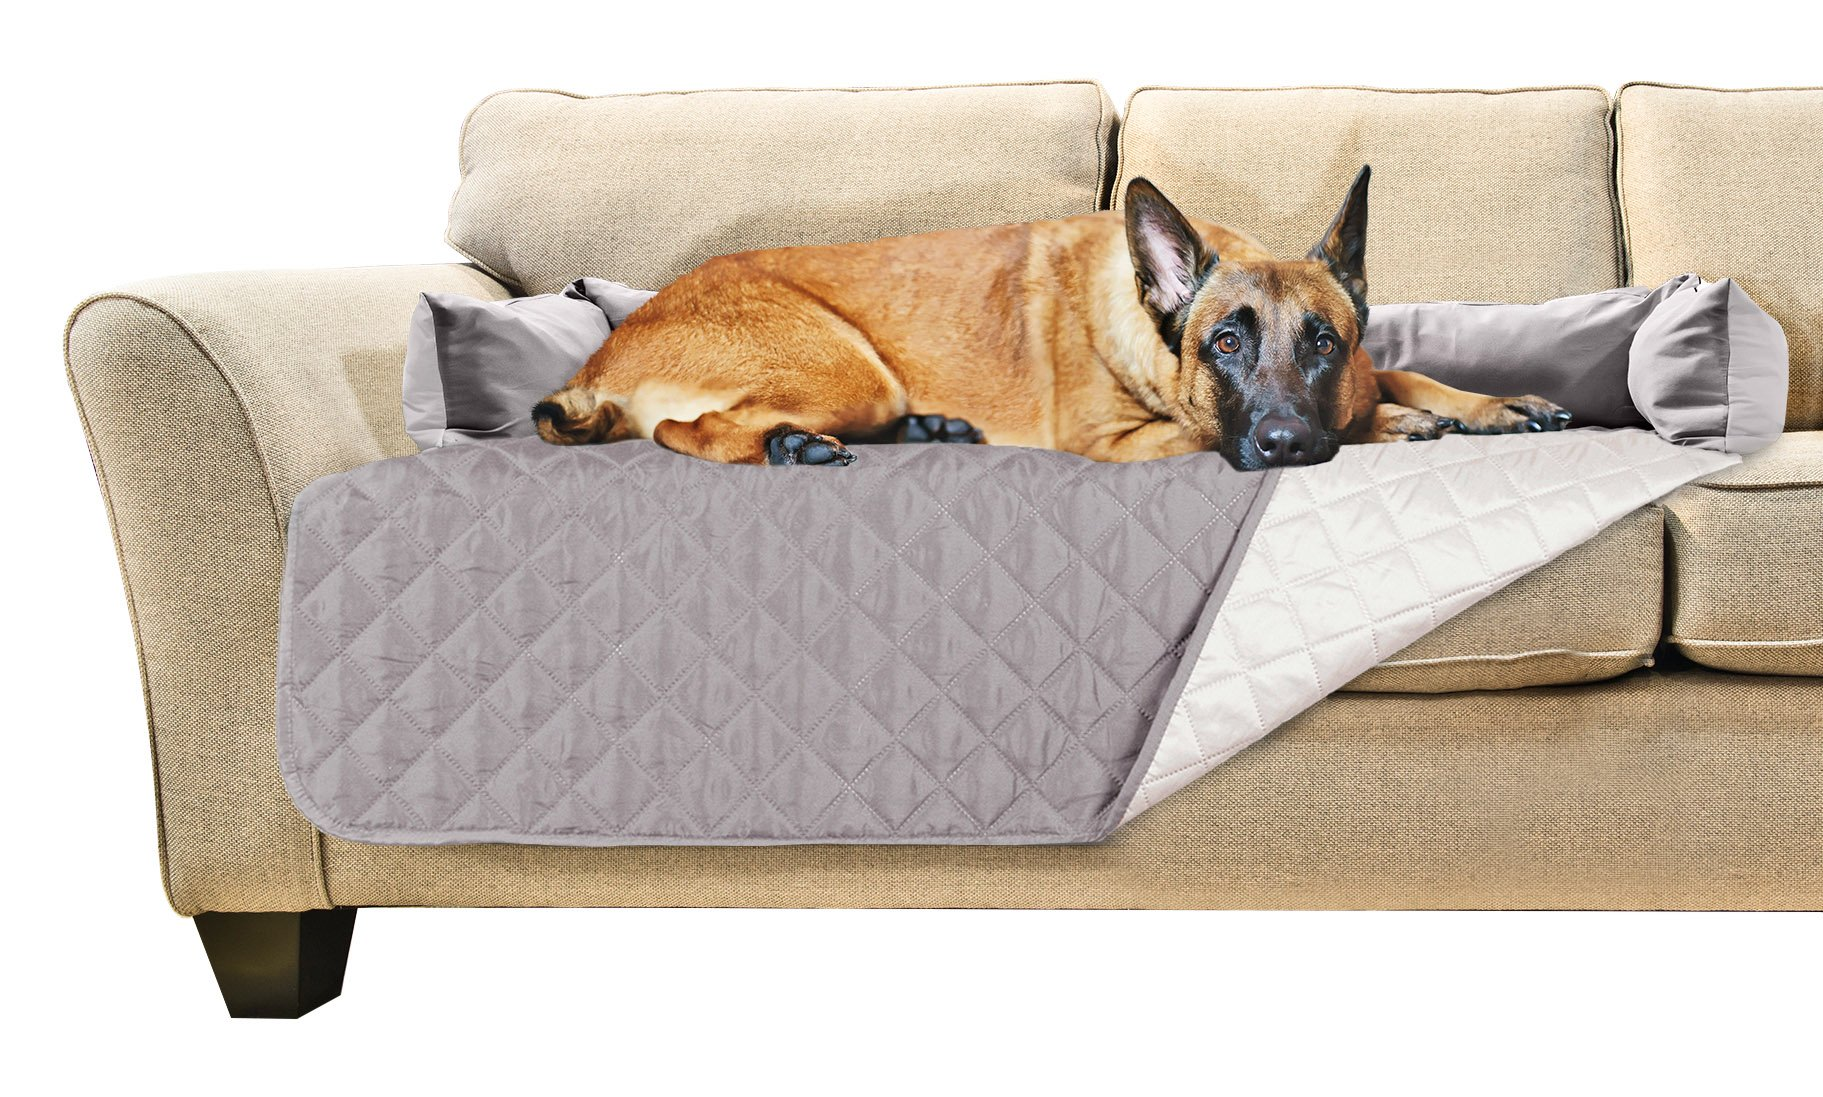 Furhaven Pet Sofa Buddy Furniture Cover Protector Pet Bed for Dogs and Cats, X-Large, Gray/Mist